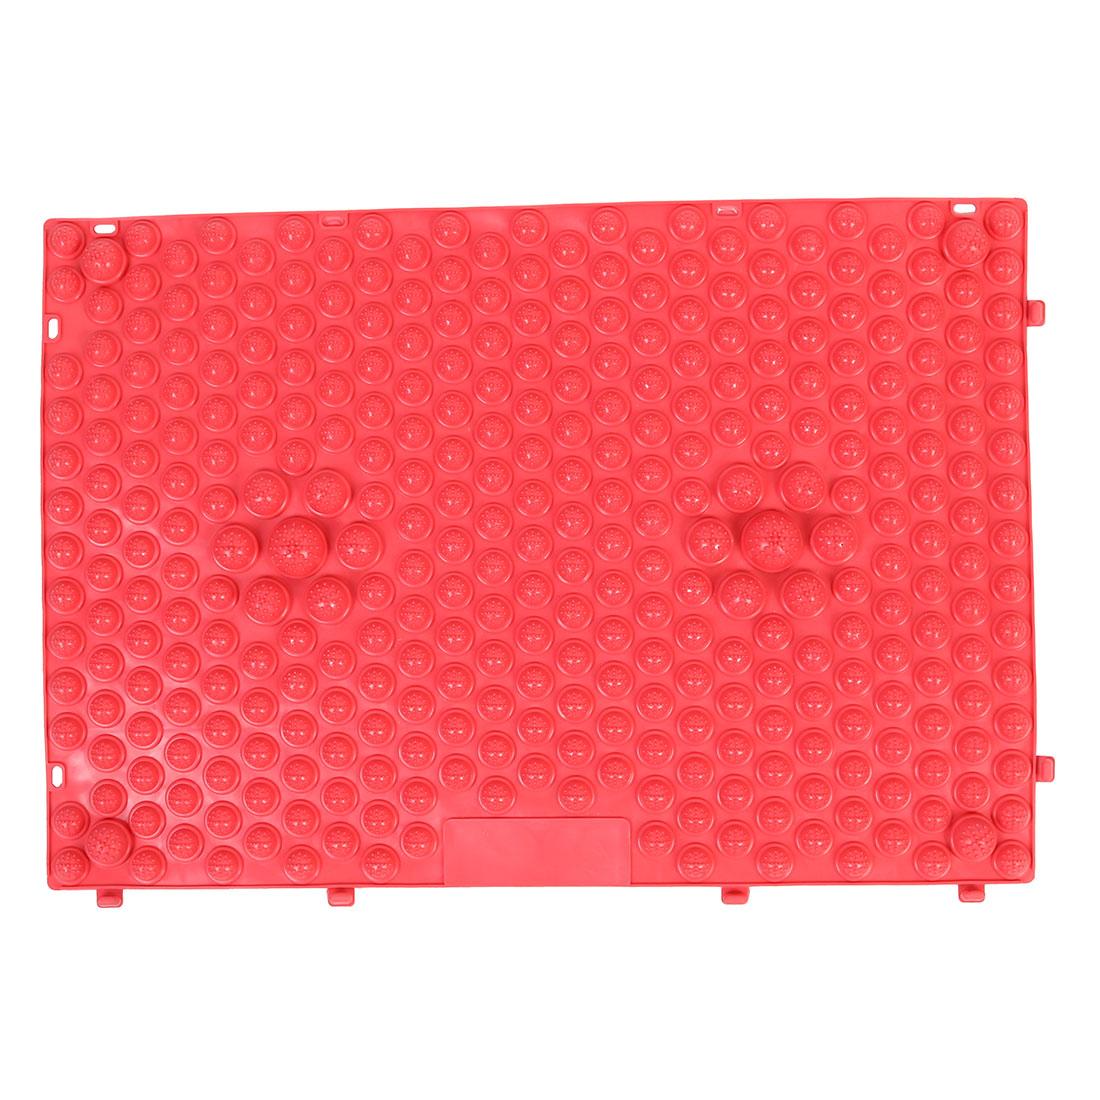 Unique Bargains Outdoor Leisure Game Rubber Acupuncture Foot Massage Mat Shiatsu Sheet Red